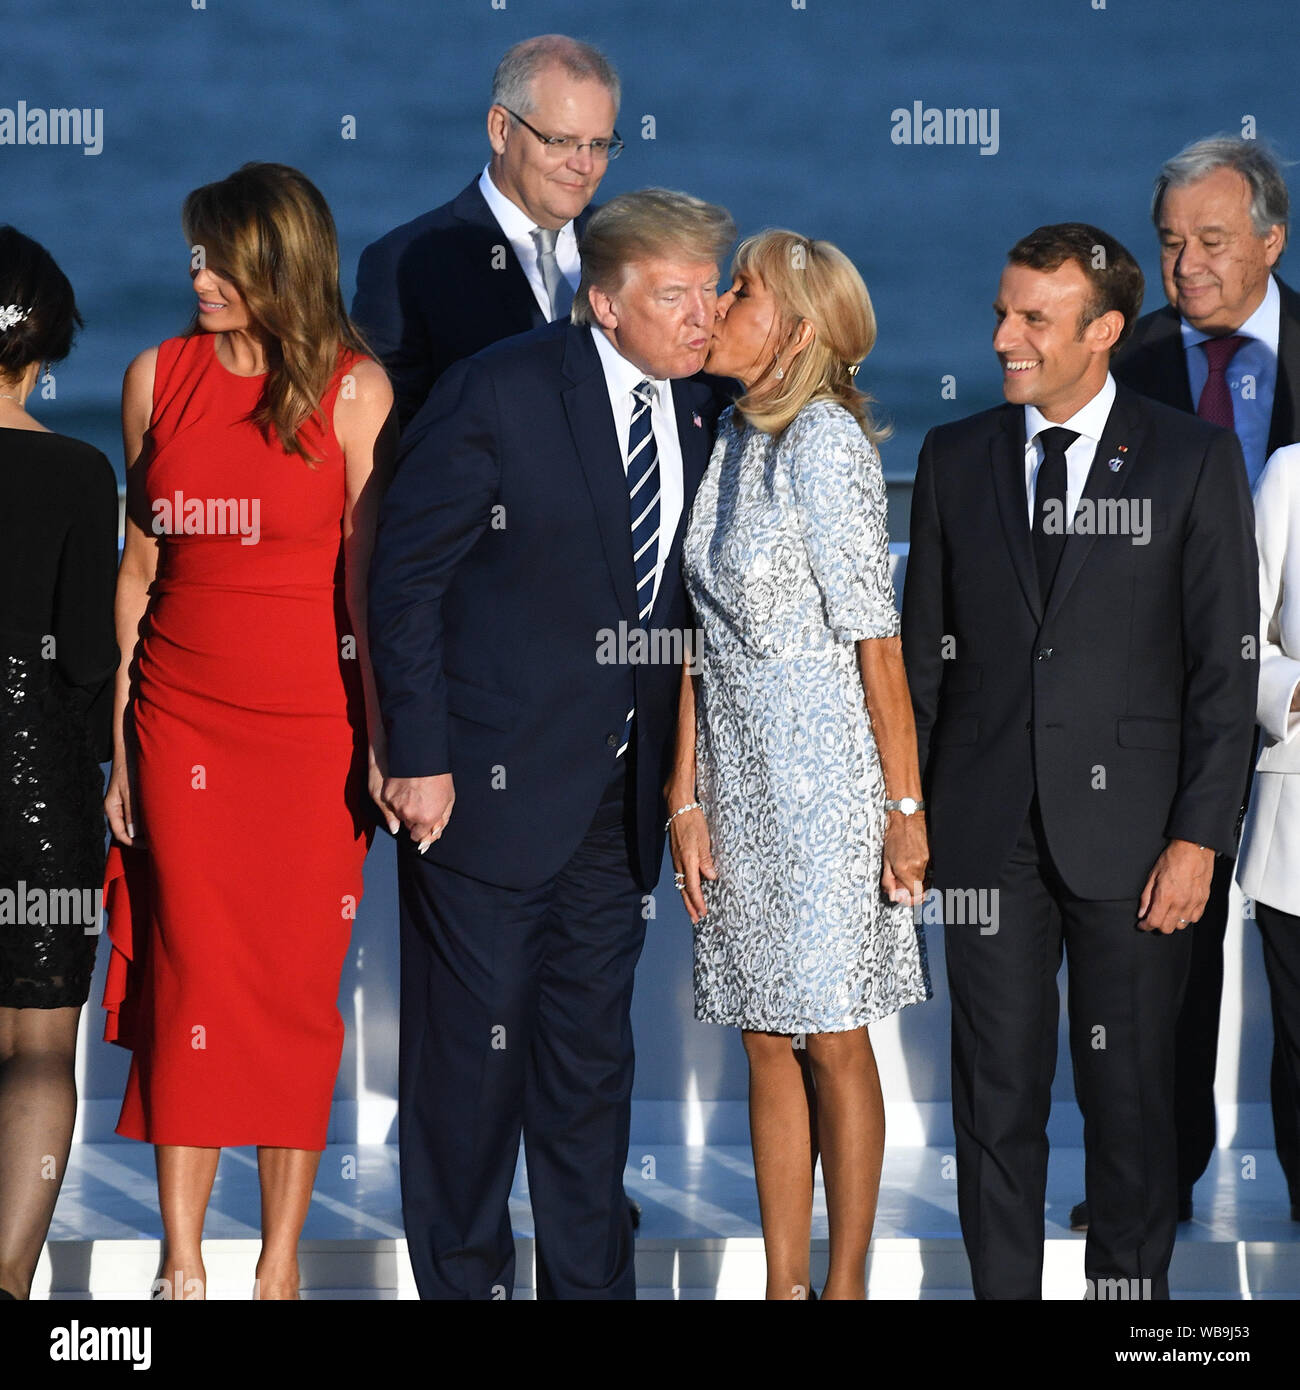 French President Emmanuel Macron Watches As His Wife Brigitte Macron Kisses President Donald Trump As He Stands With First Lady Melania Trump As They Join Other World Leaders For The Family Photo